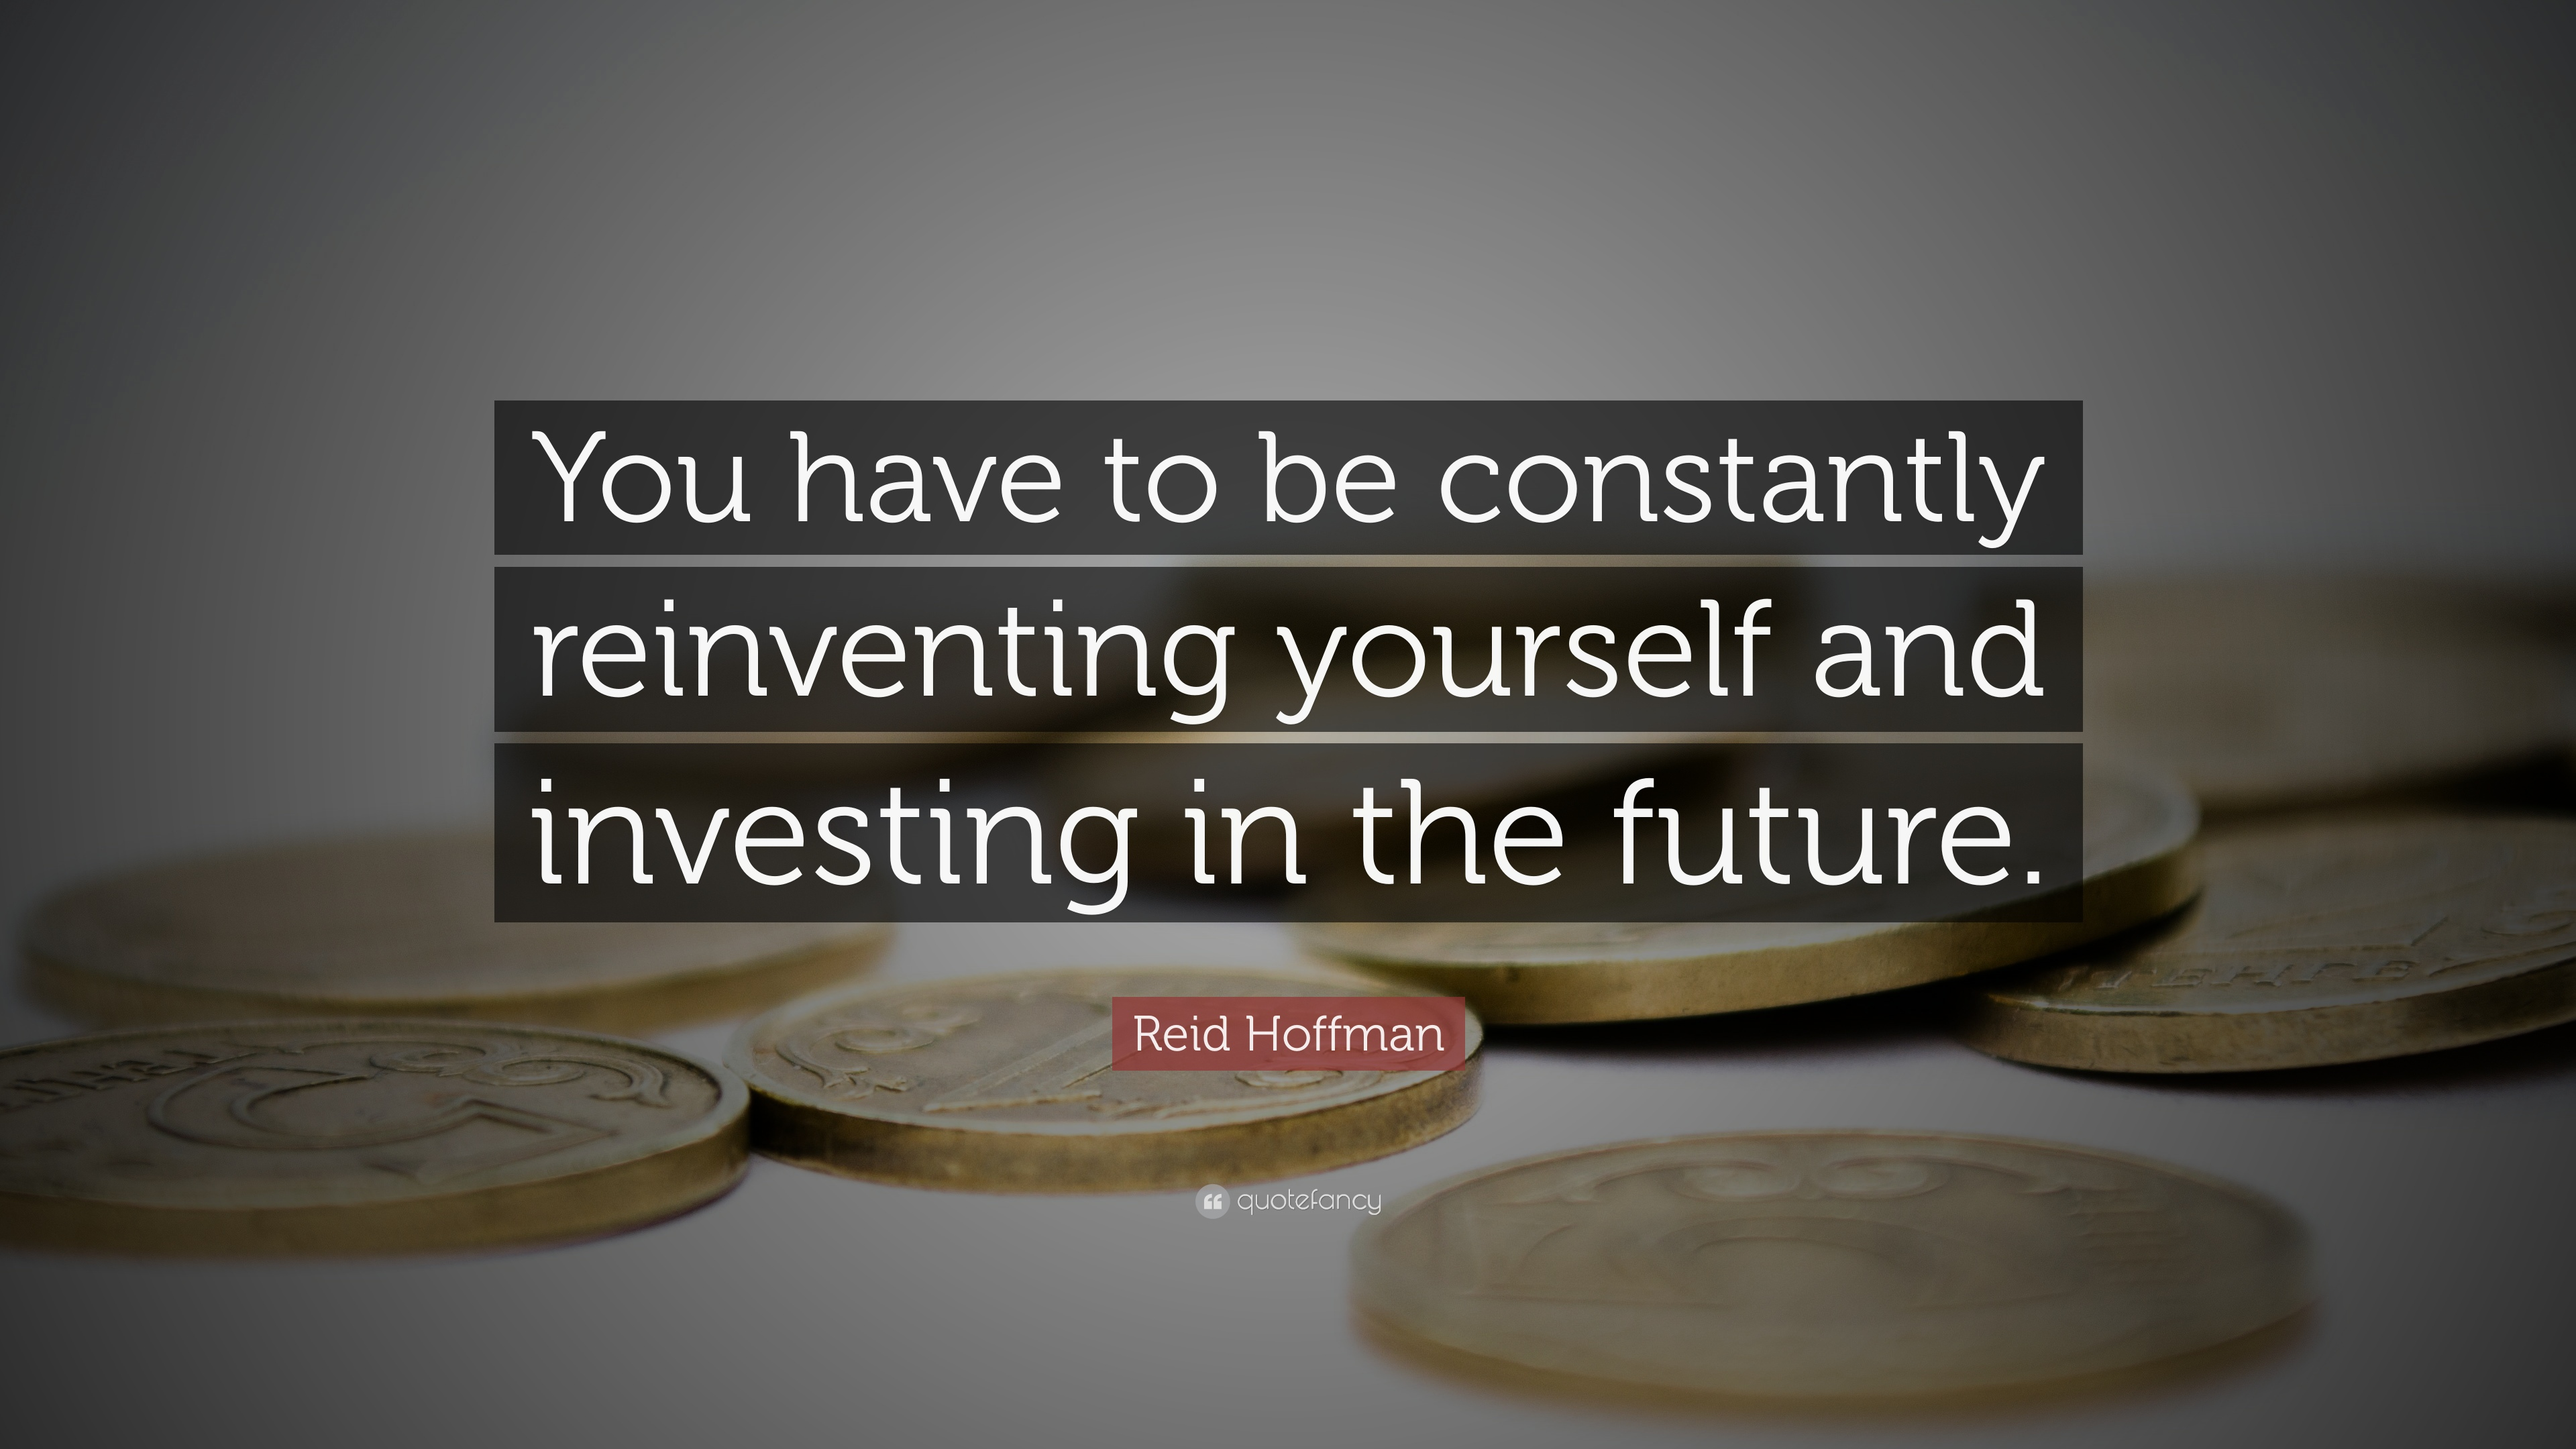 Reid Hoffman Quote You Have To Be Constantly Reinventing Yourself And Investing In The